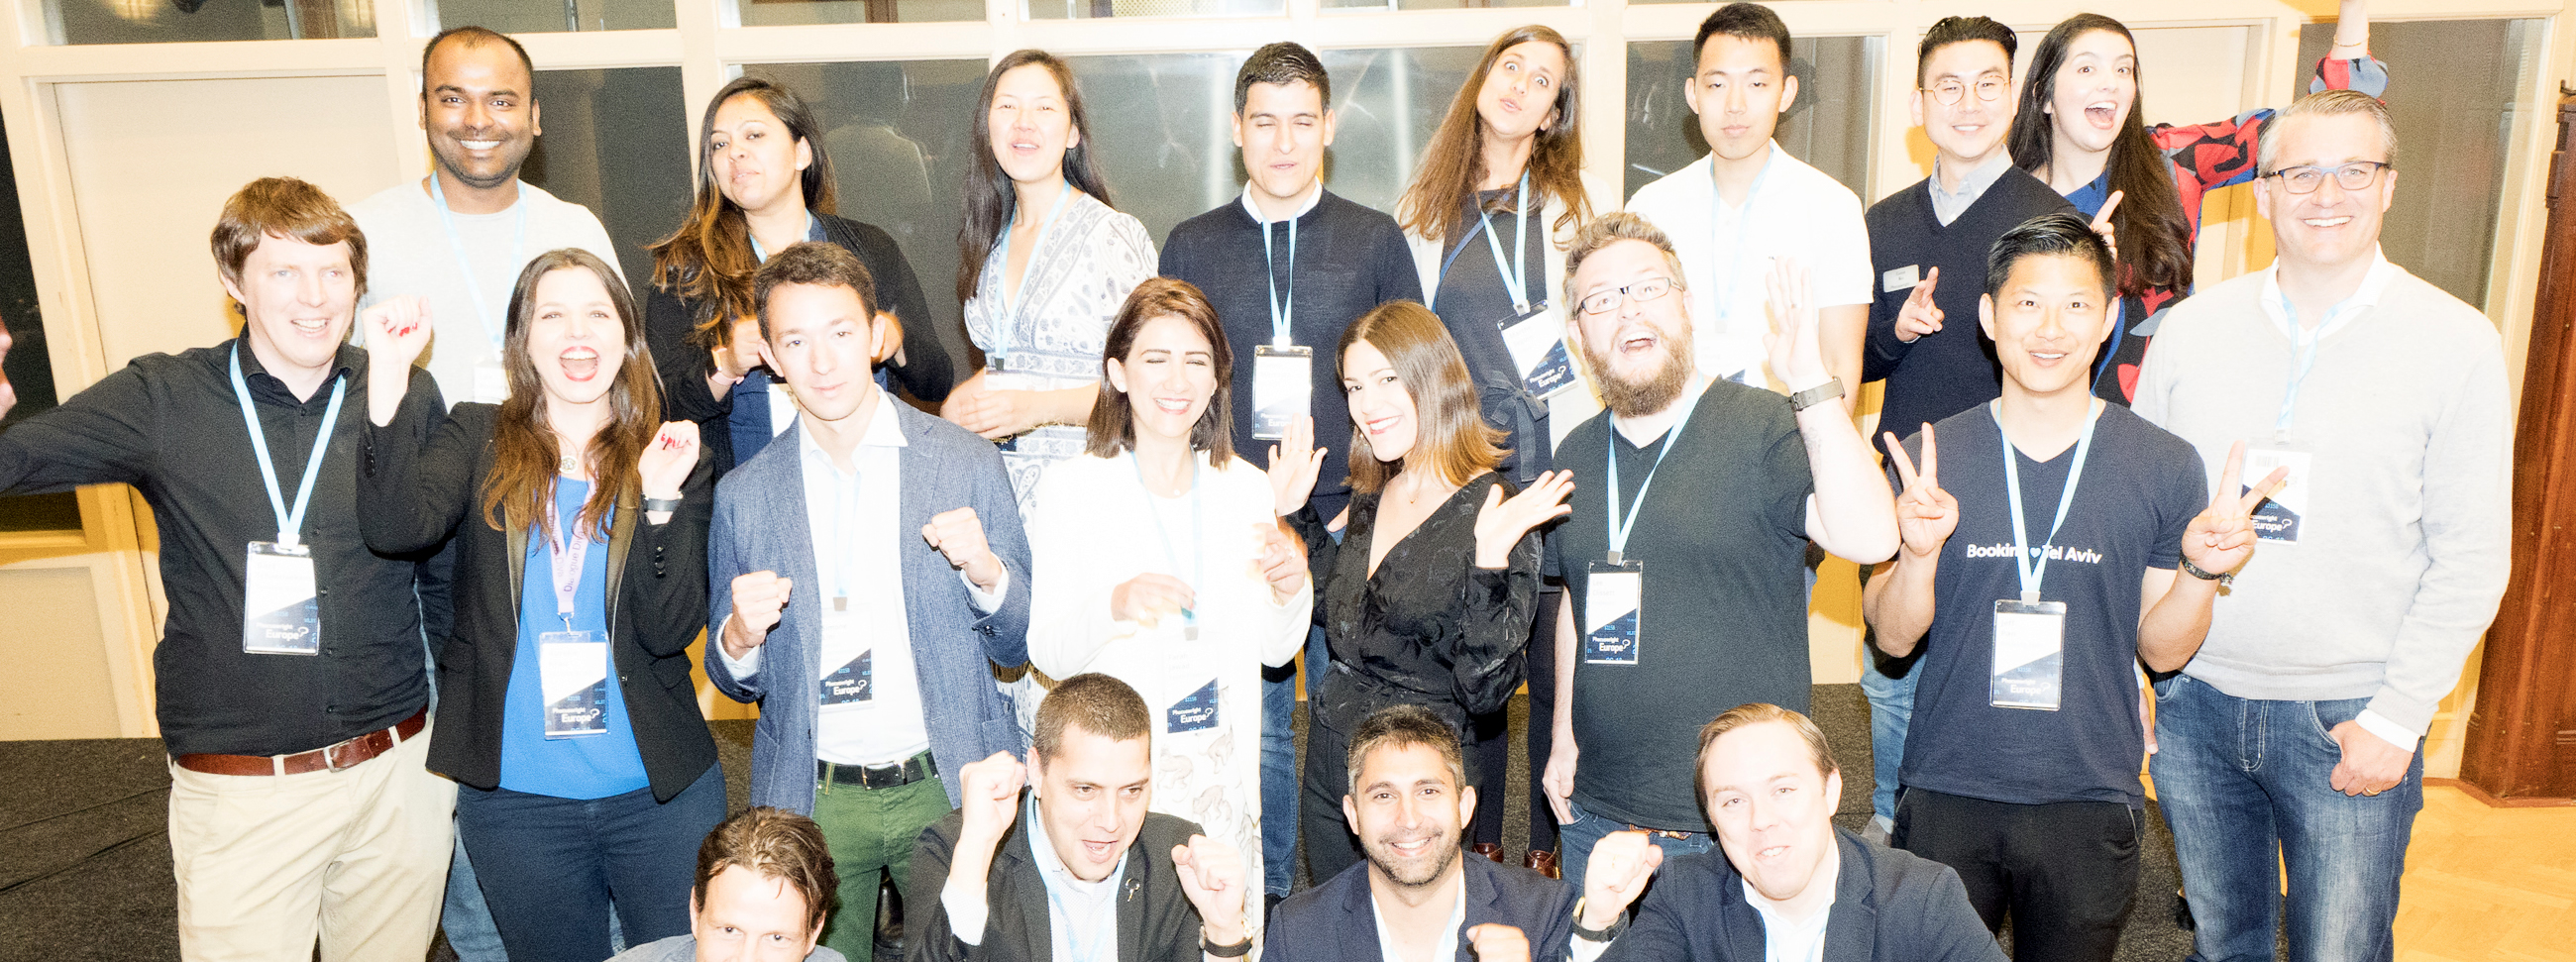 Young Leaders Summit Europe 2018 Class